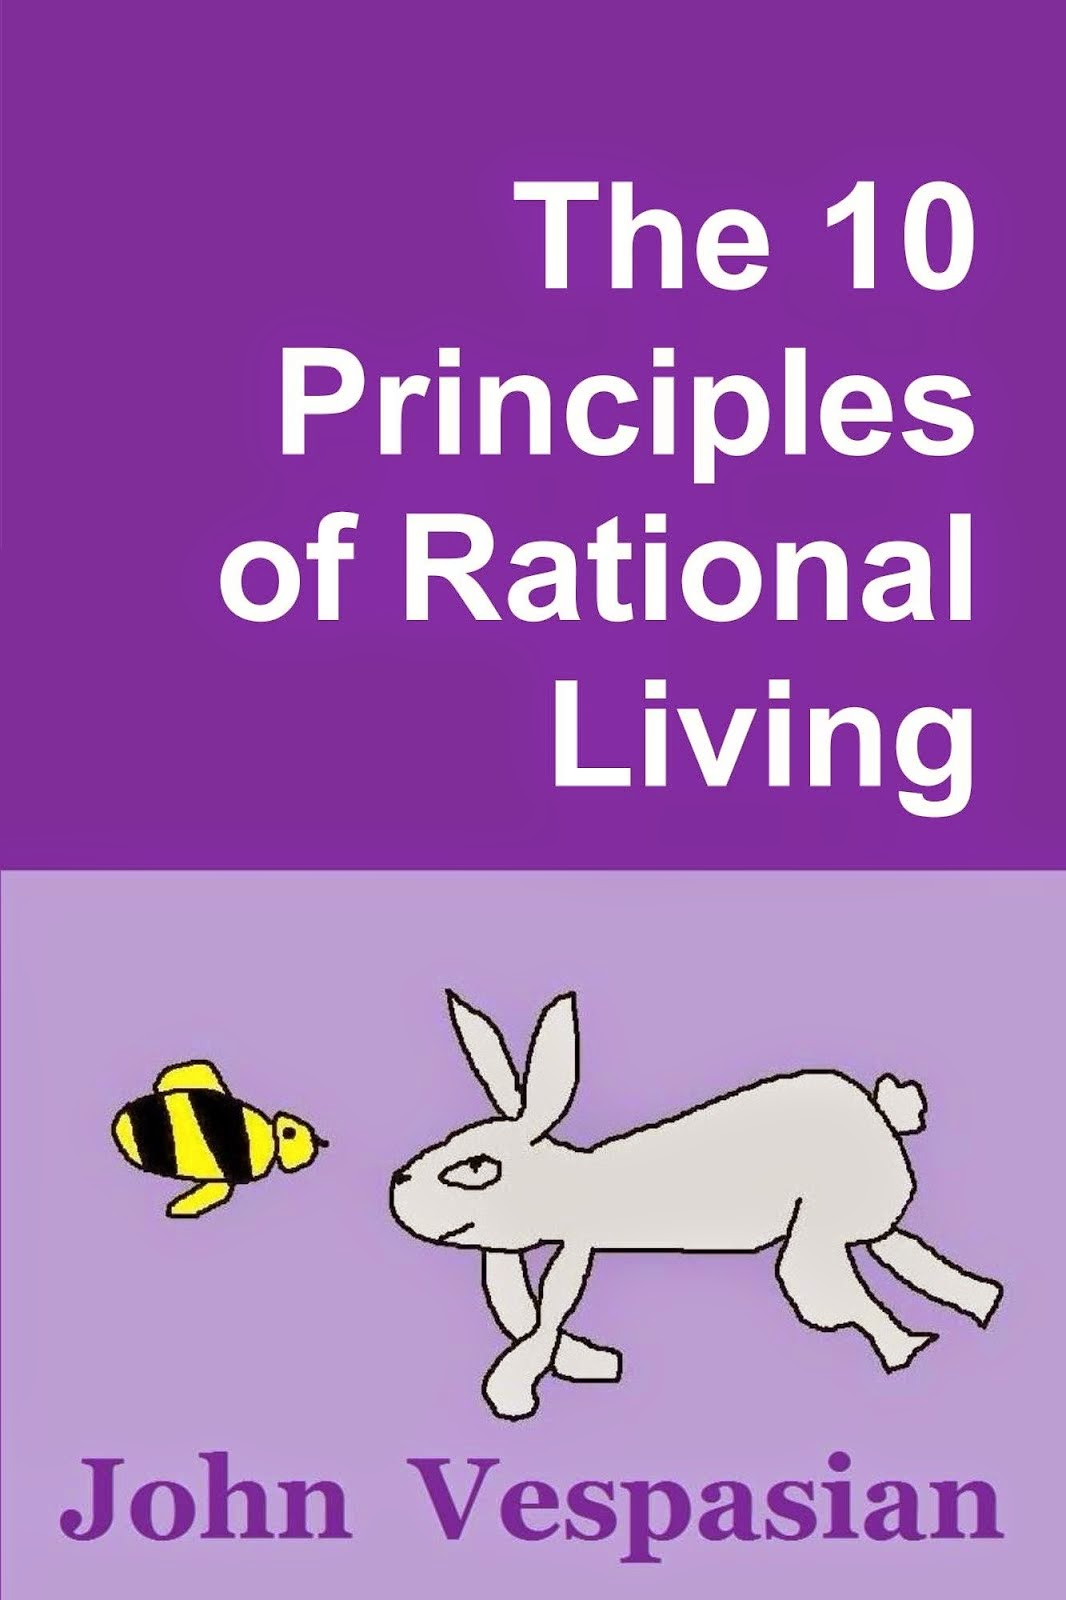 The 10 principles of rational living